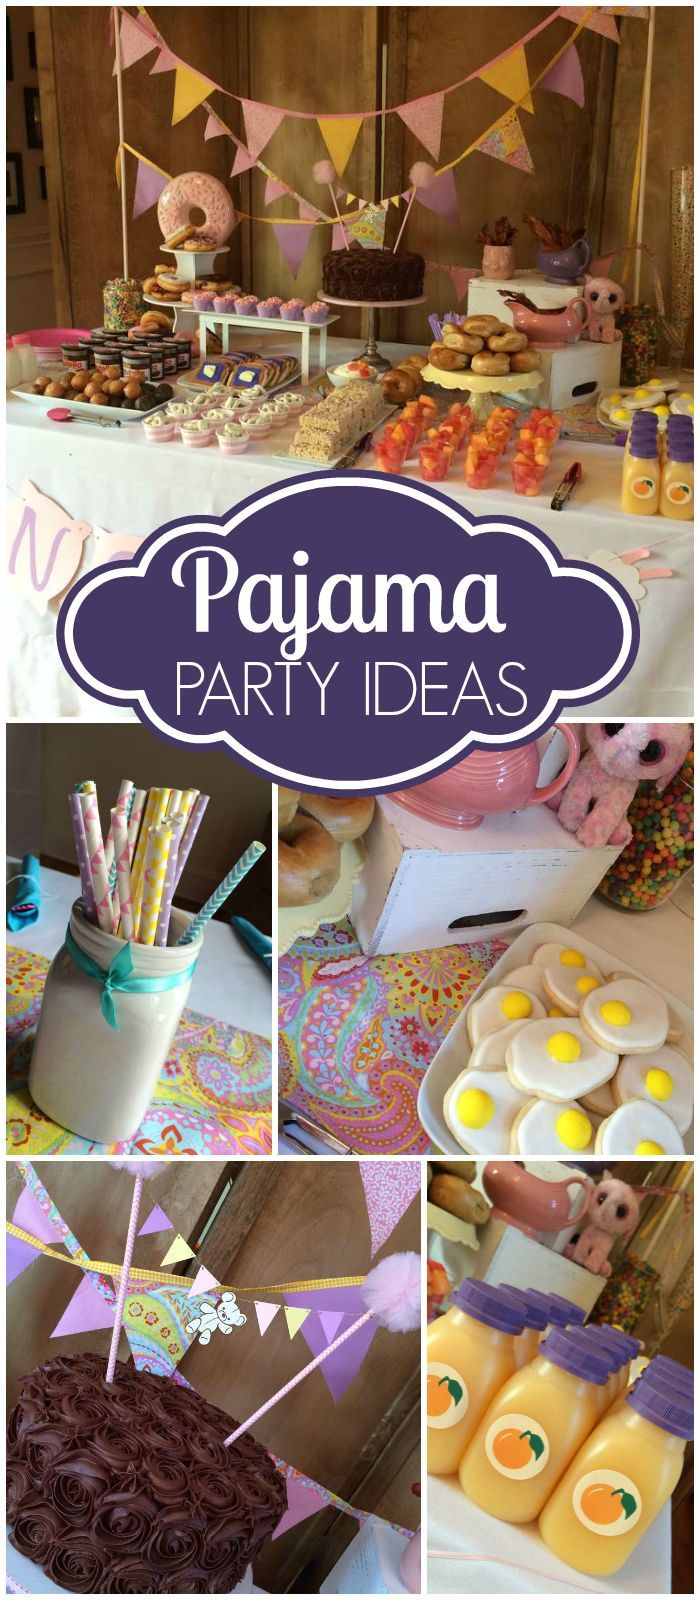 What fun ideas for a birthday party sleepover! My girls would love this fun idea.